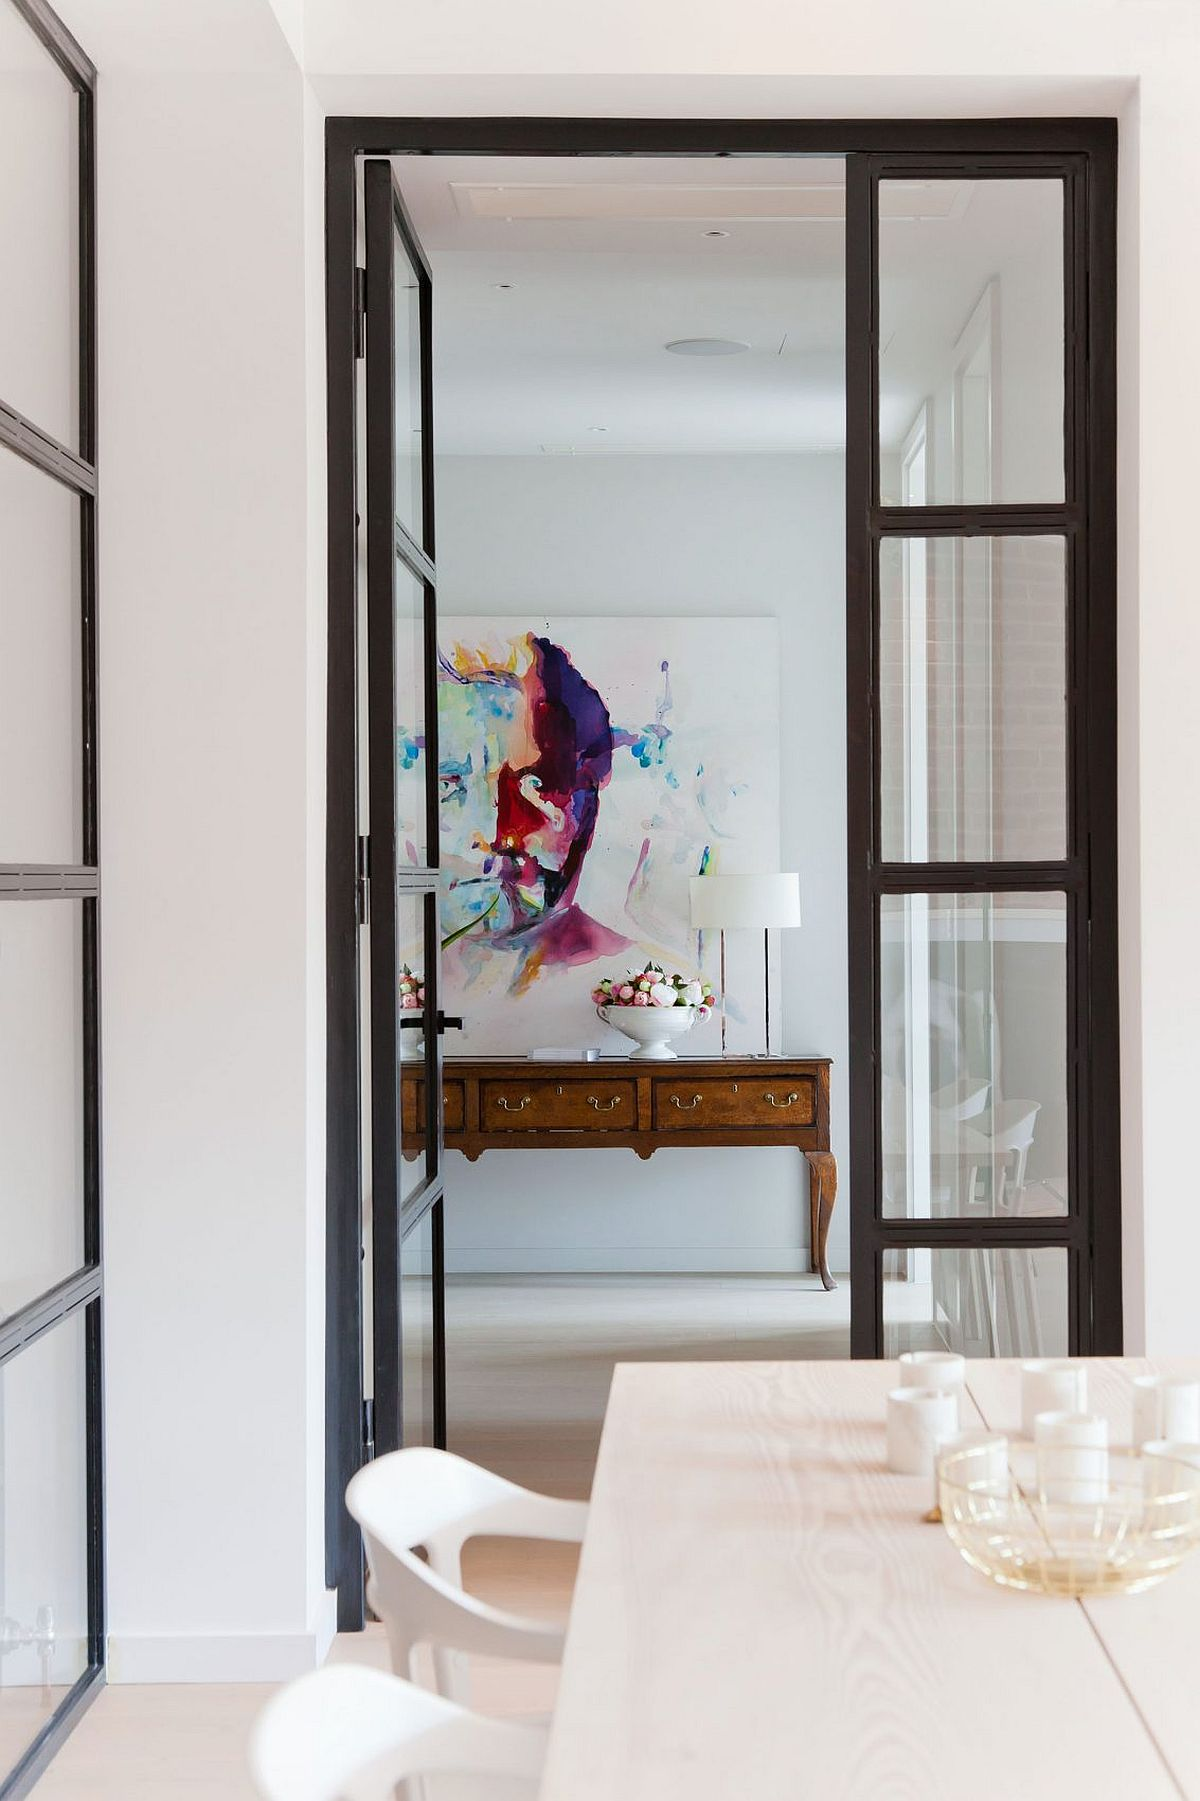 Entry of the renovated penthouse apartment in Shoreditch, London